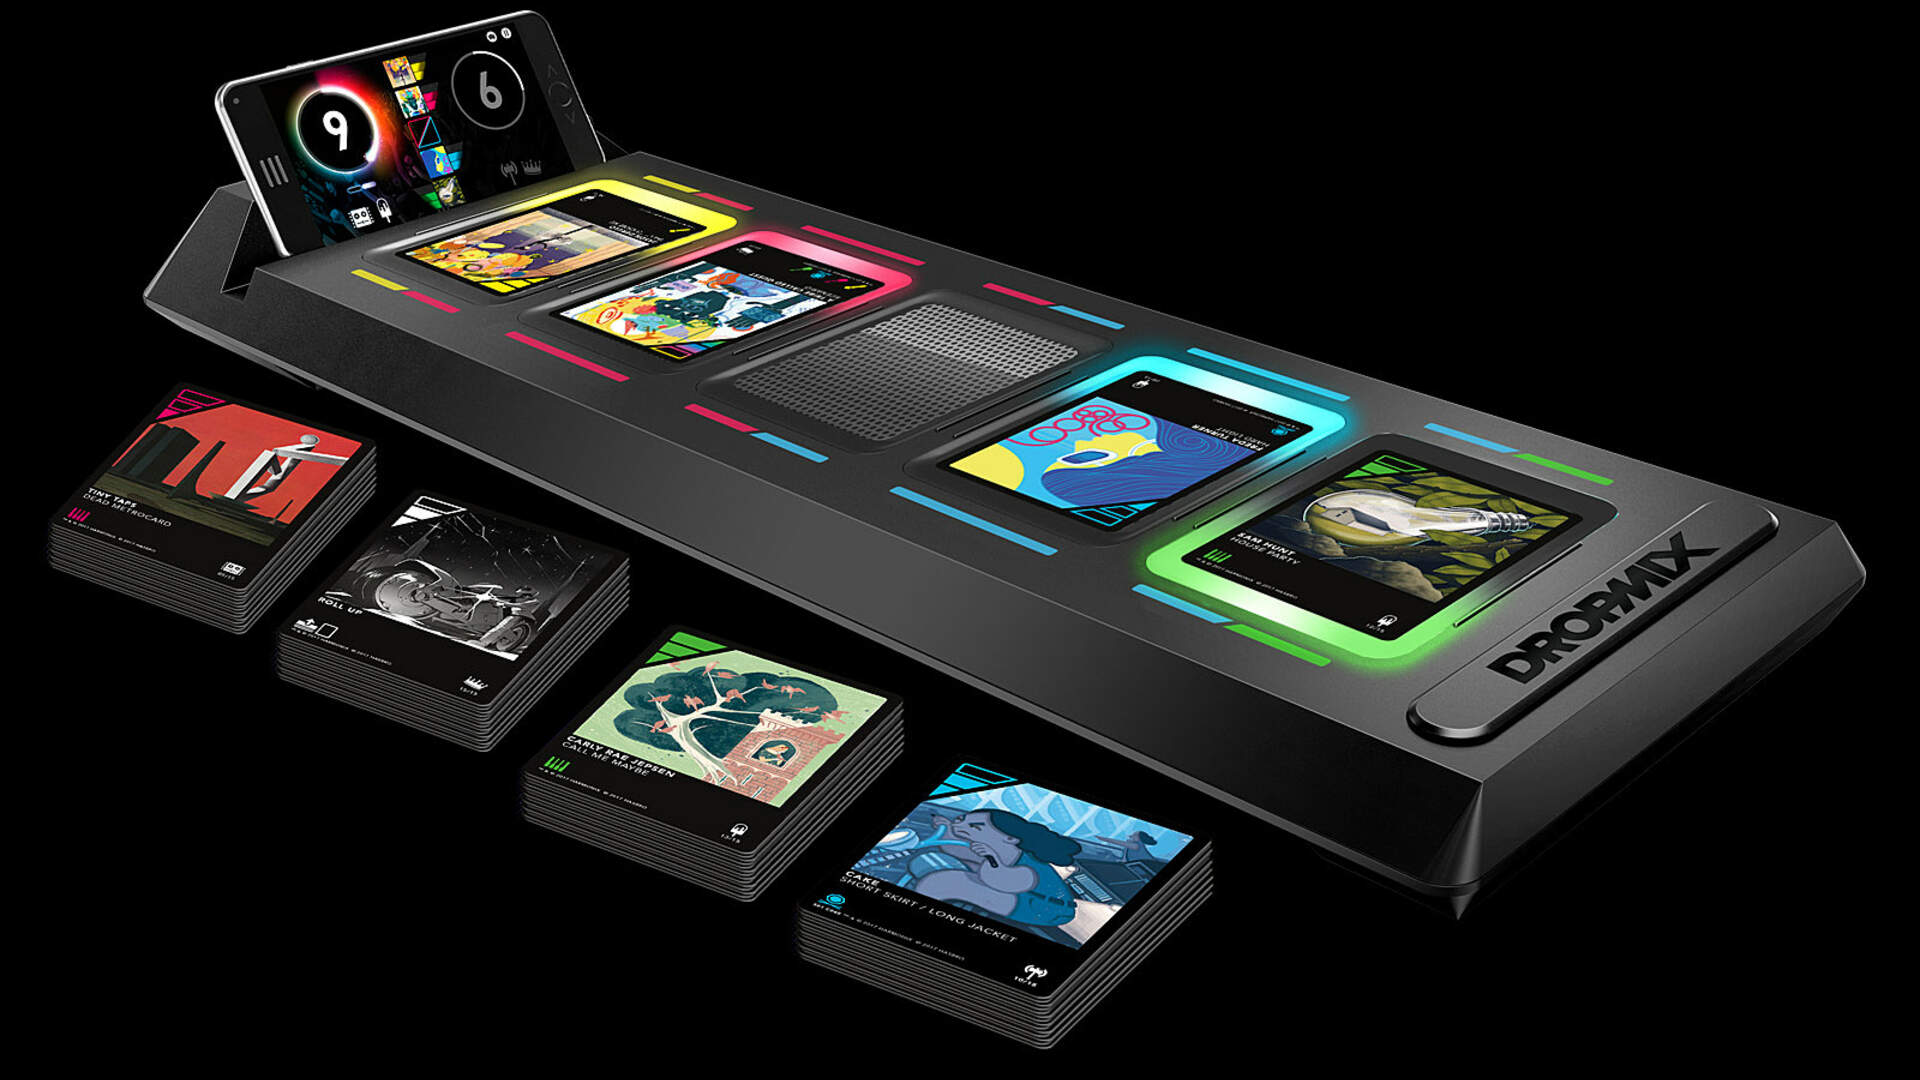 Get Harmonix's DropMix Music Gaming System for $49 on Cyber Monday